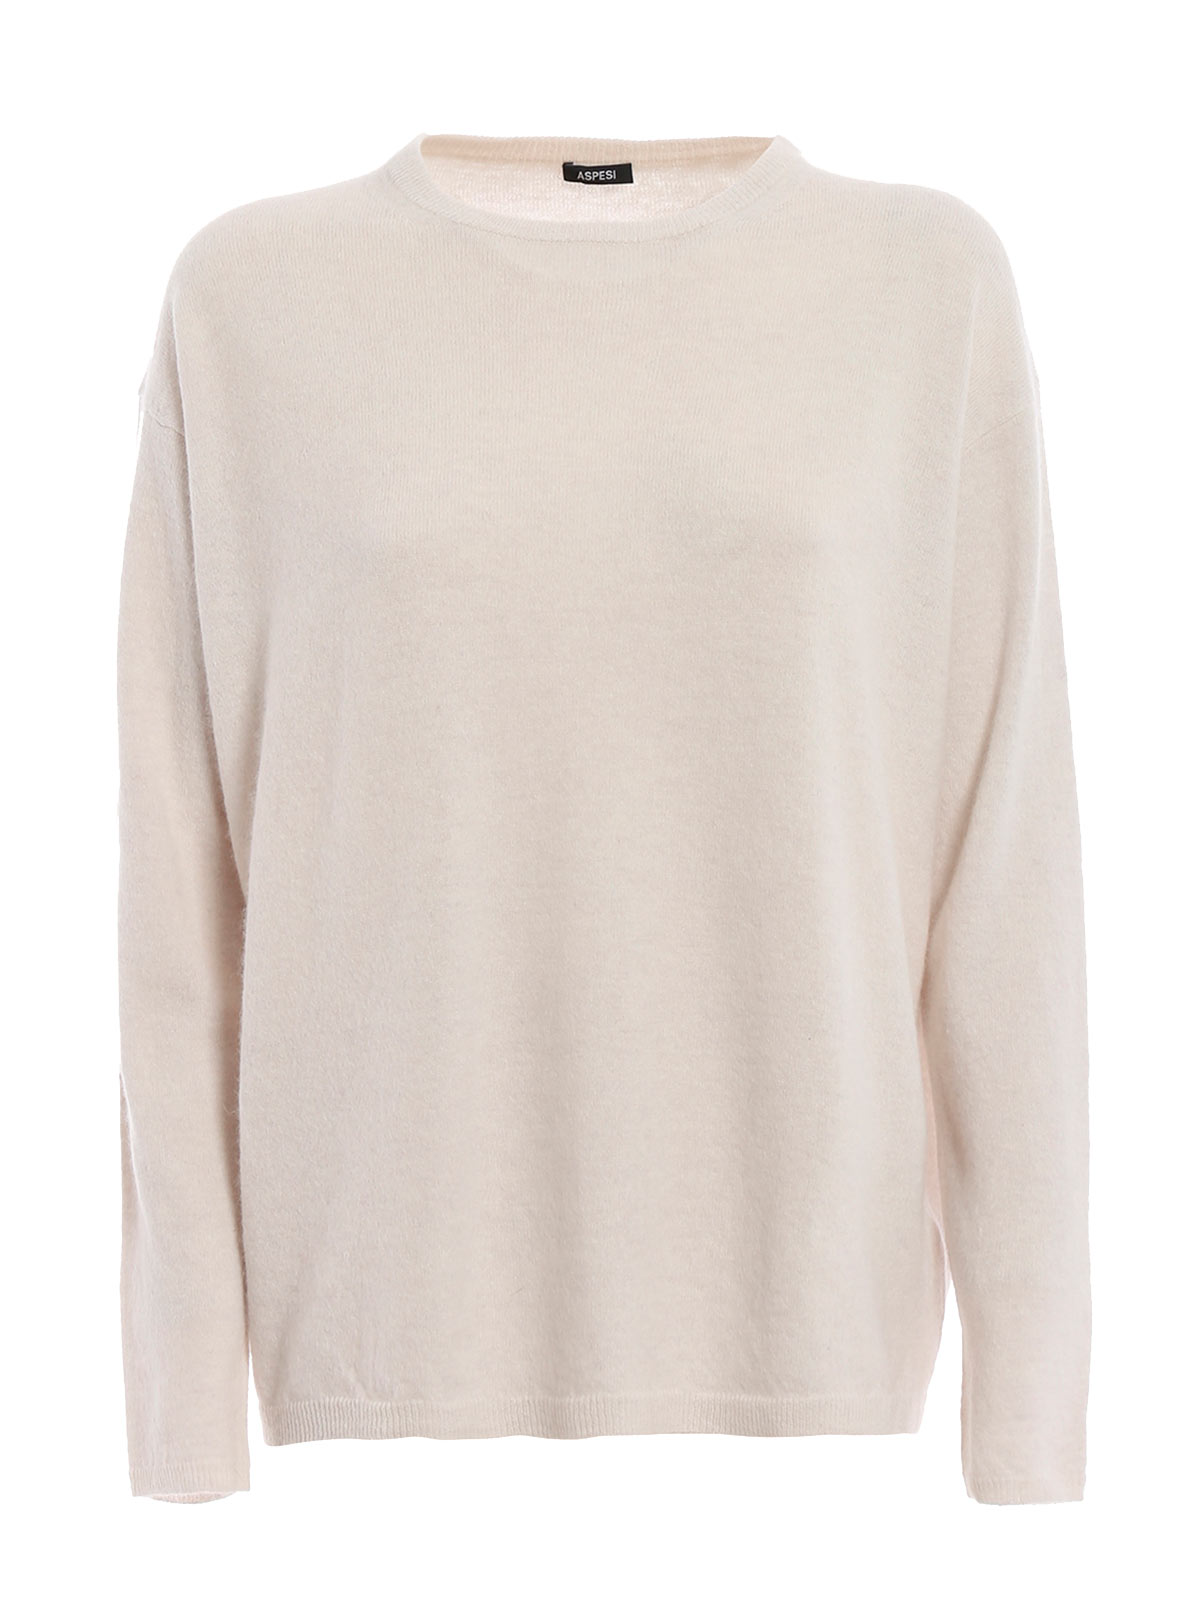 Picture of ASPESI | Women's Wool and Angora Sweater